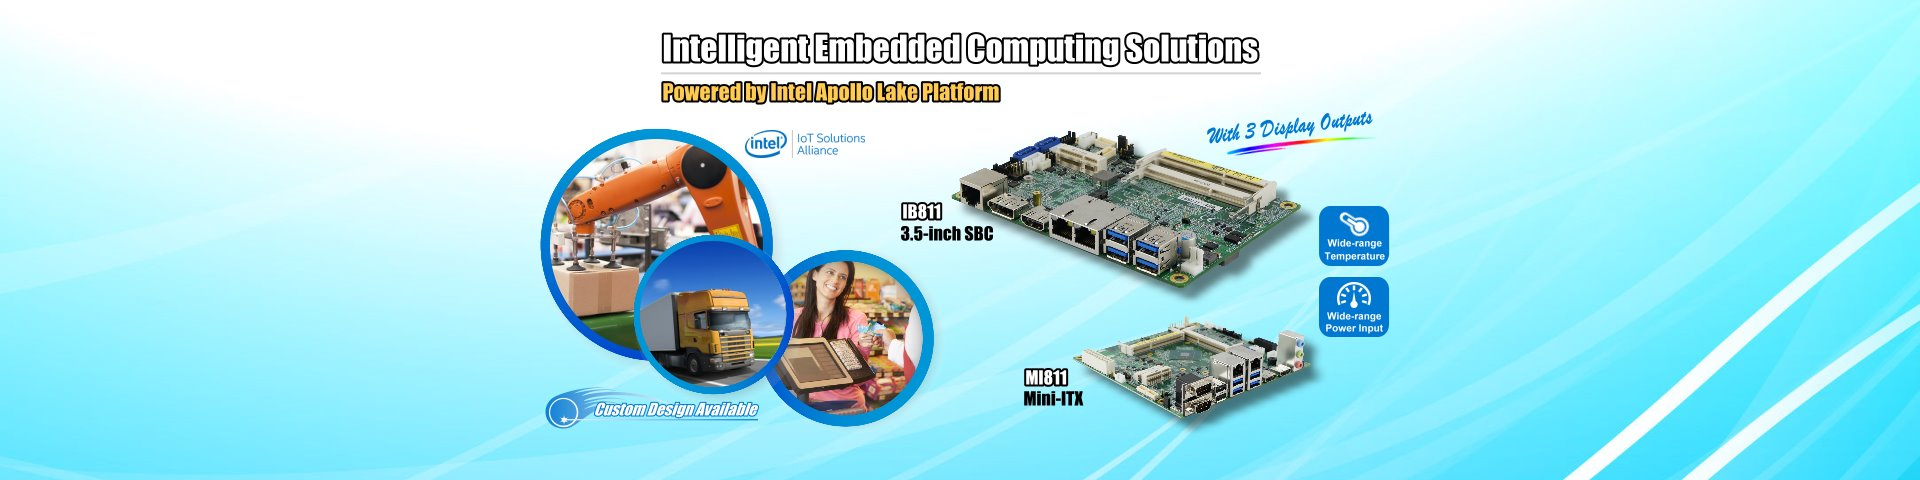 IBASE Intelligent Embedded Computing Solutions